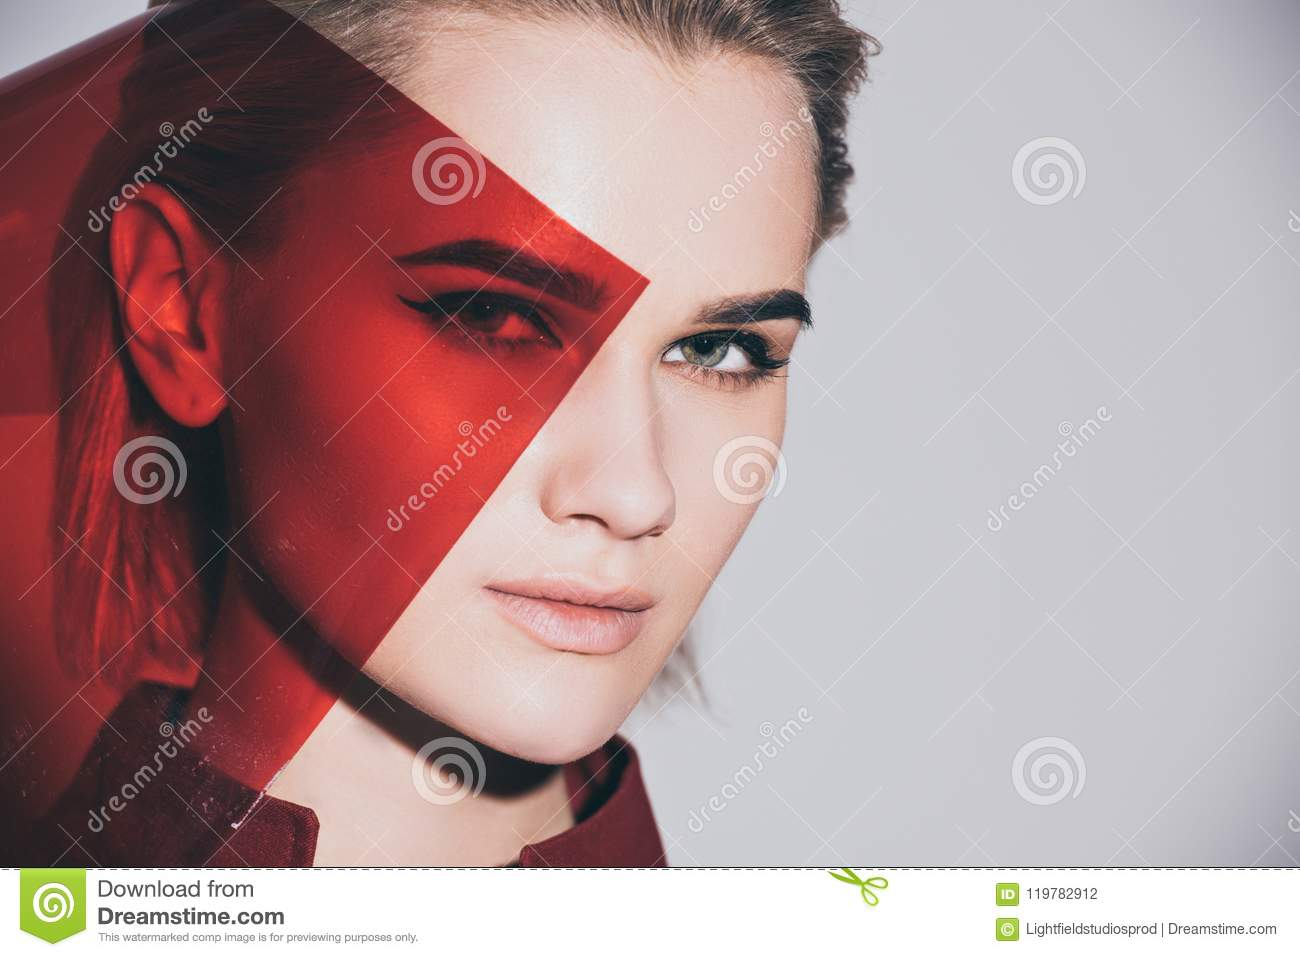 Portrait of beautiful fashionable girl posing with red filter